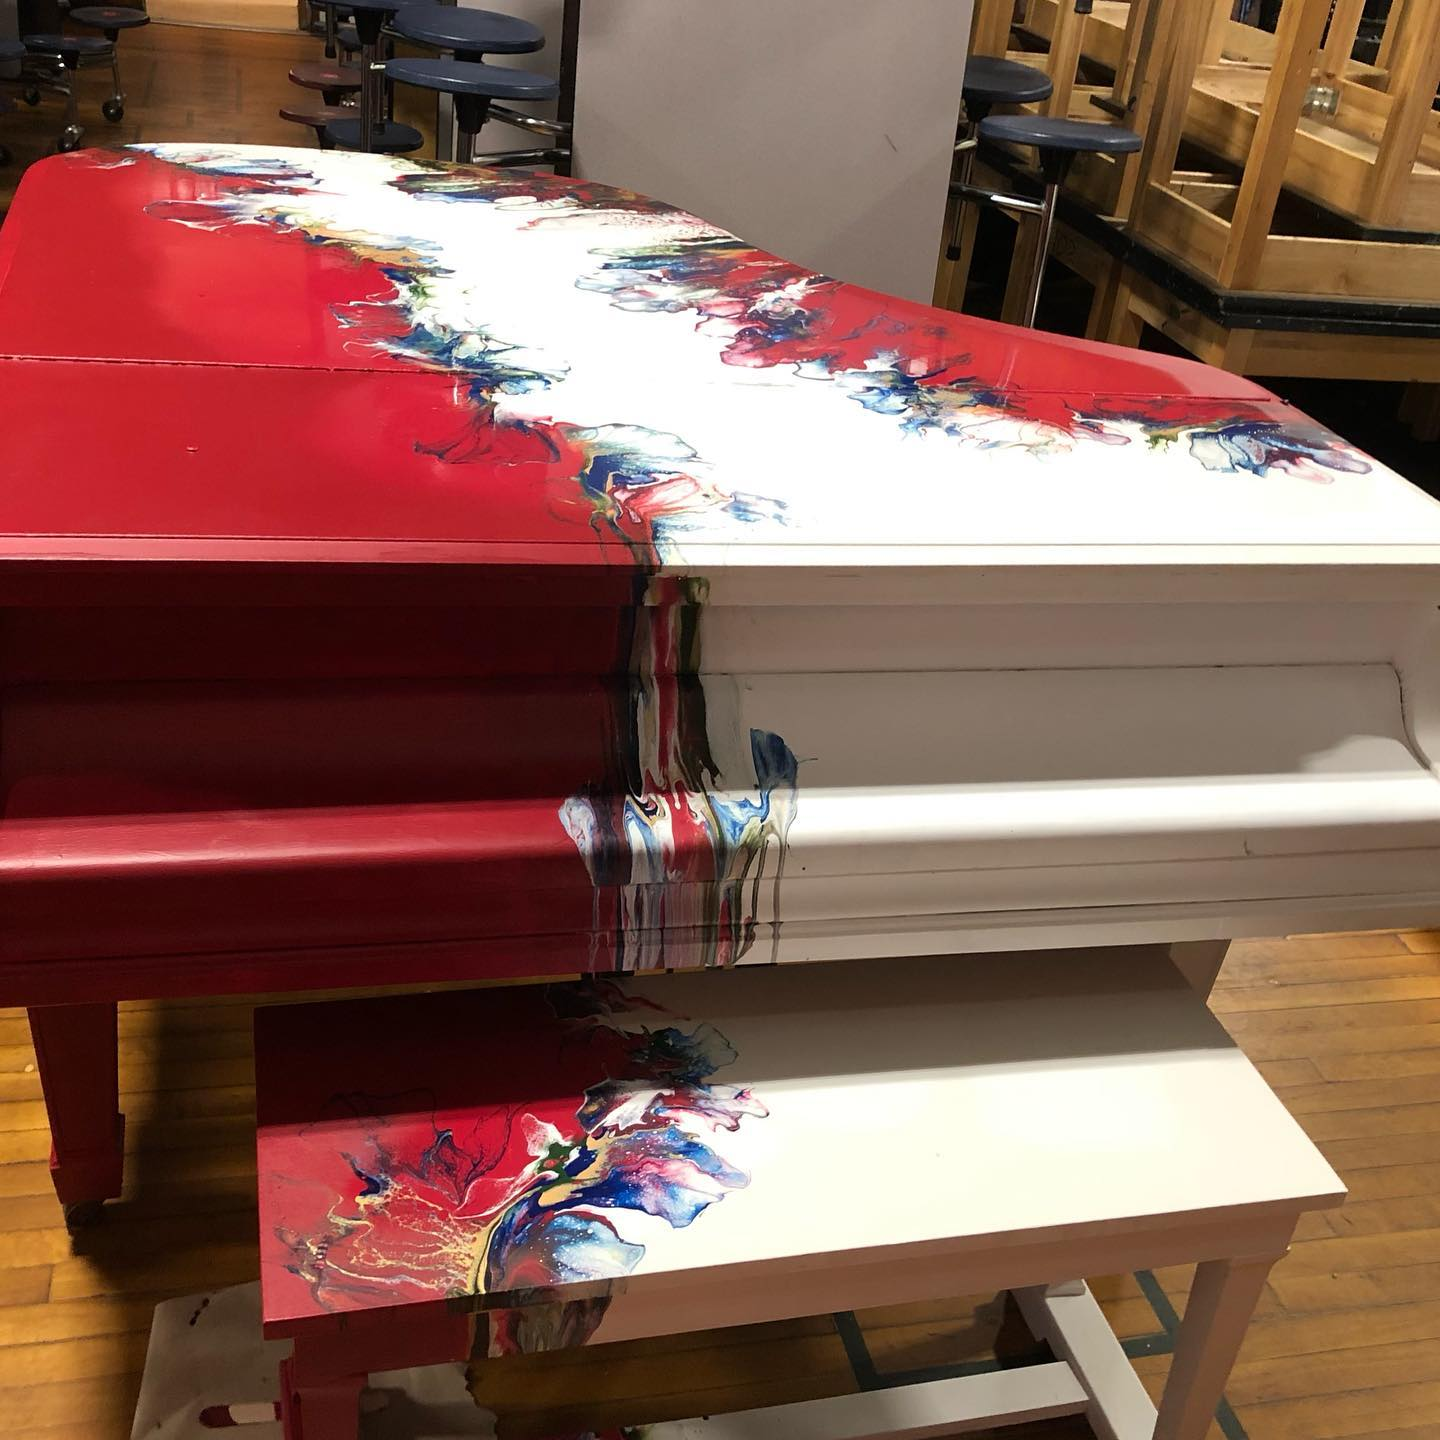 Red and White piano with flowers dripping down center and sides